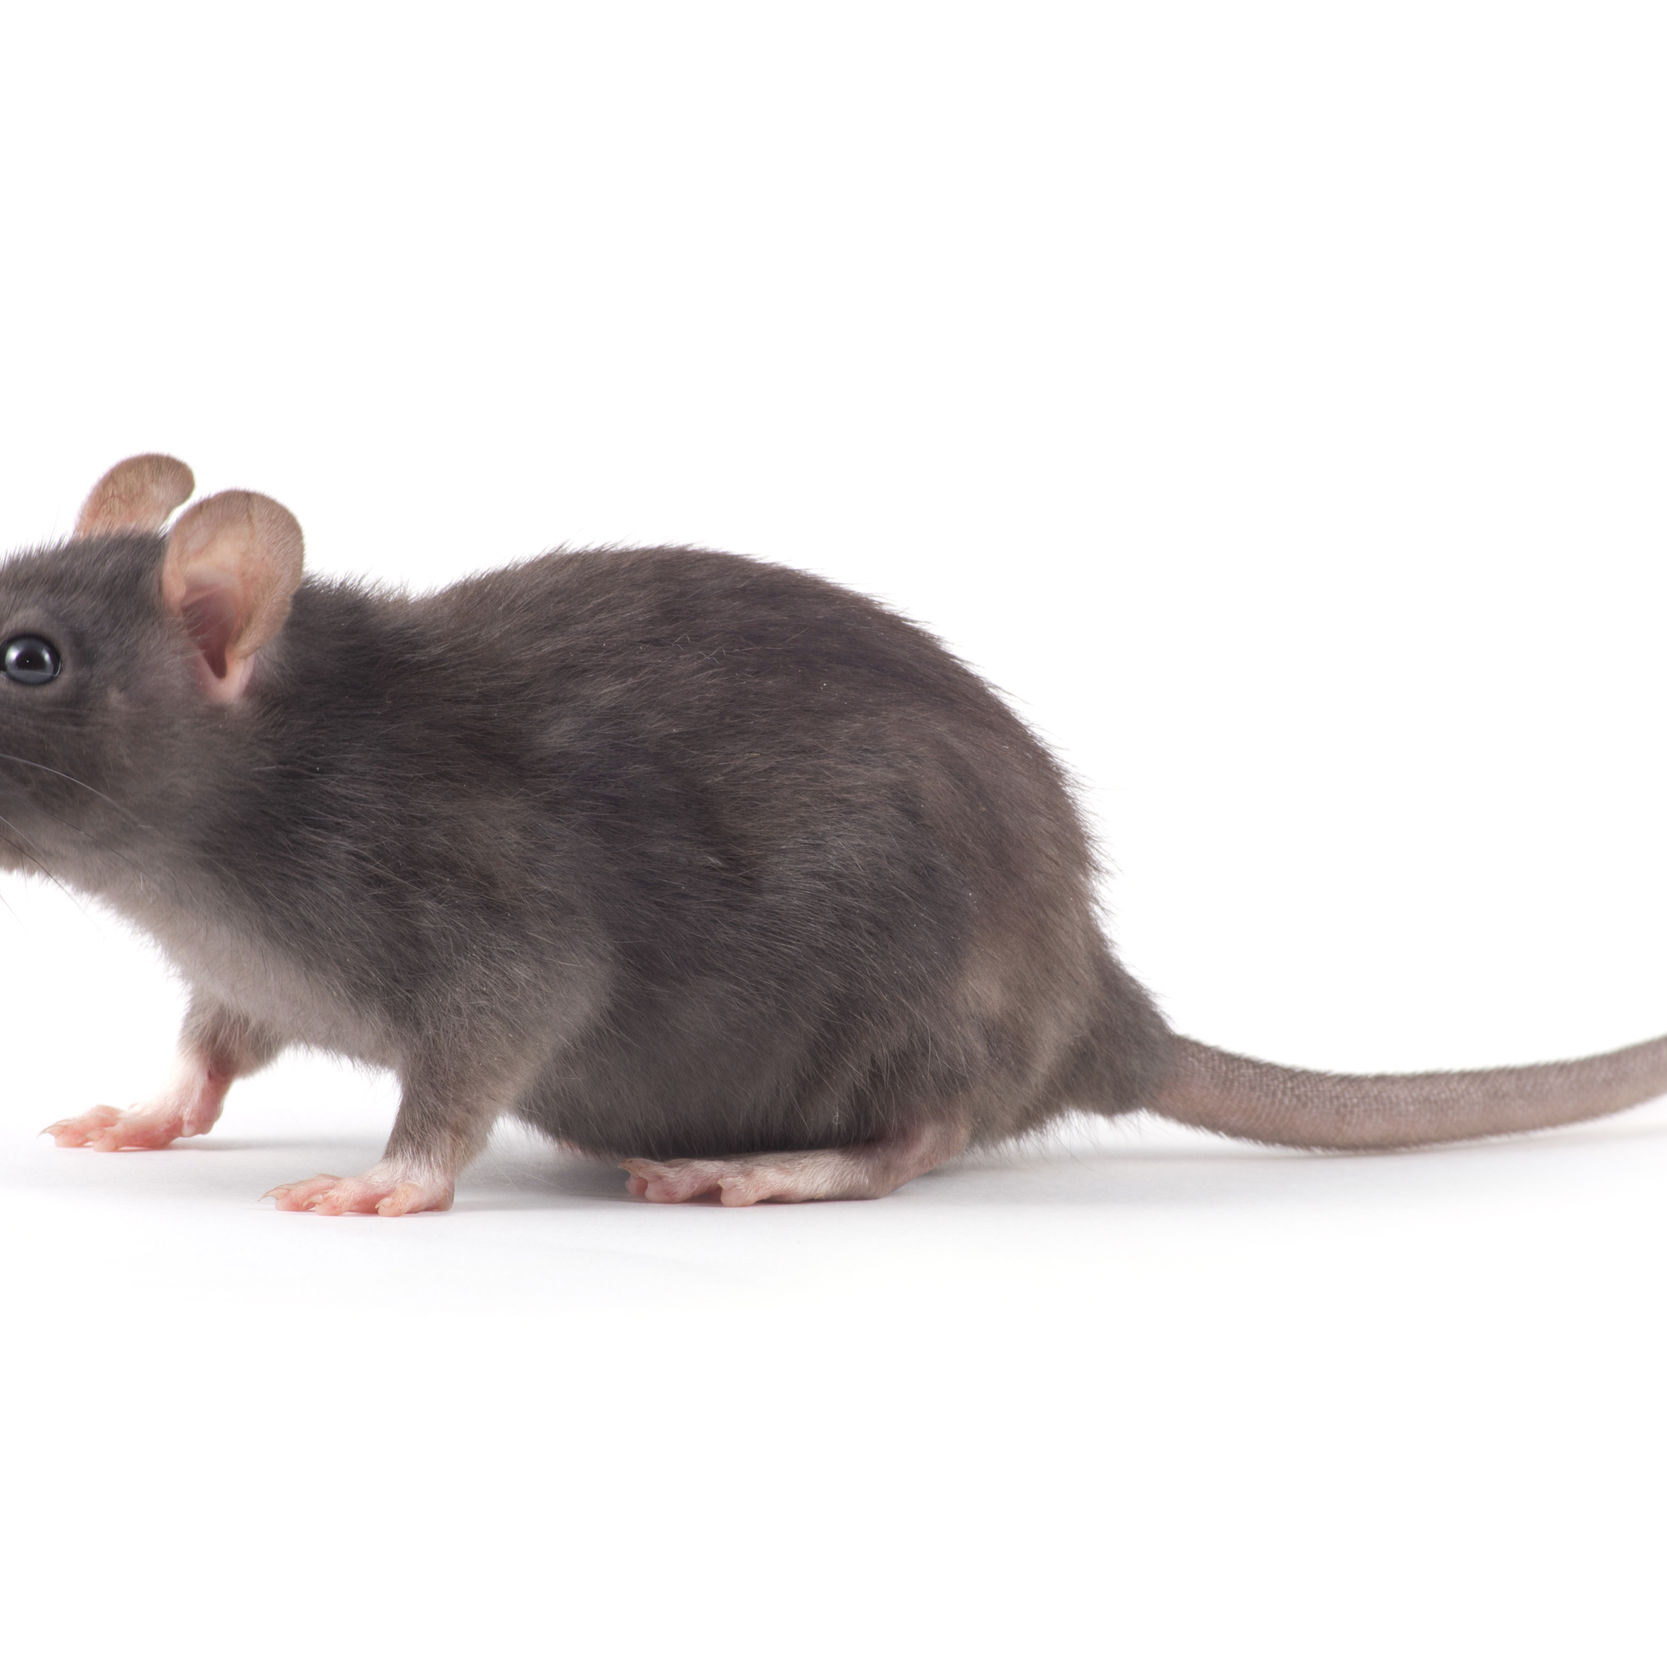 50703161 - rat close-up isolated on white background